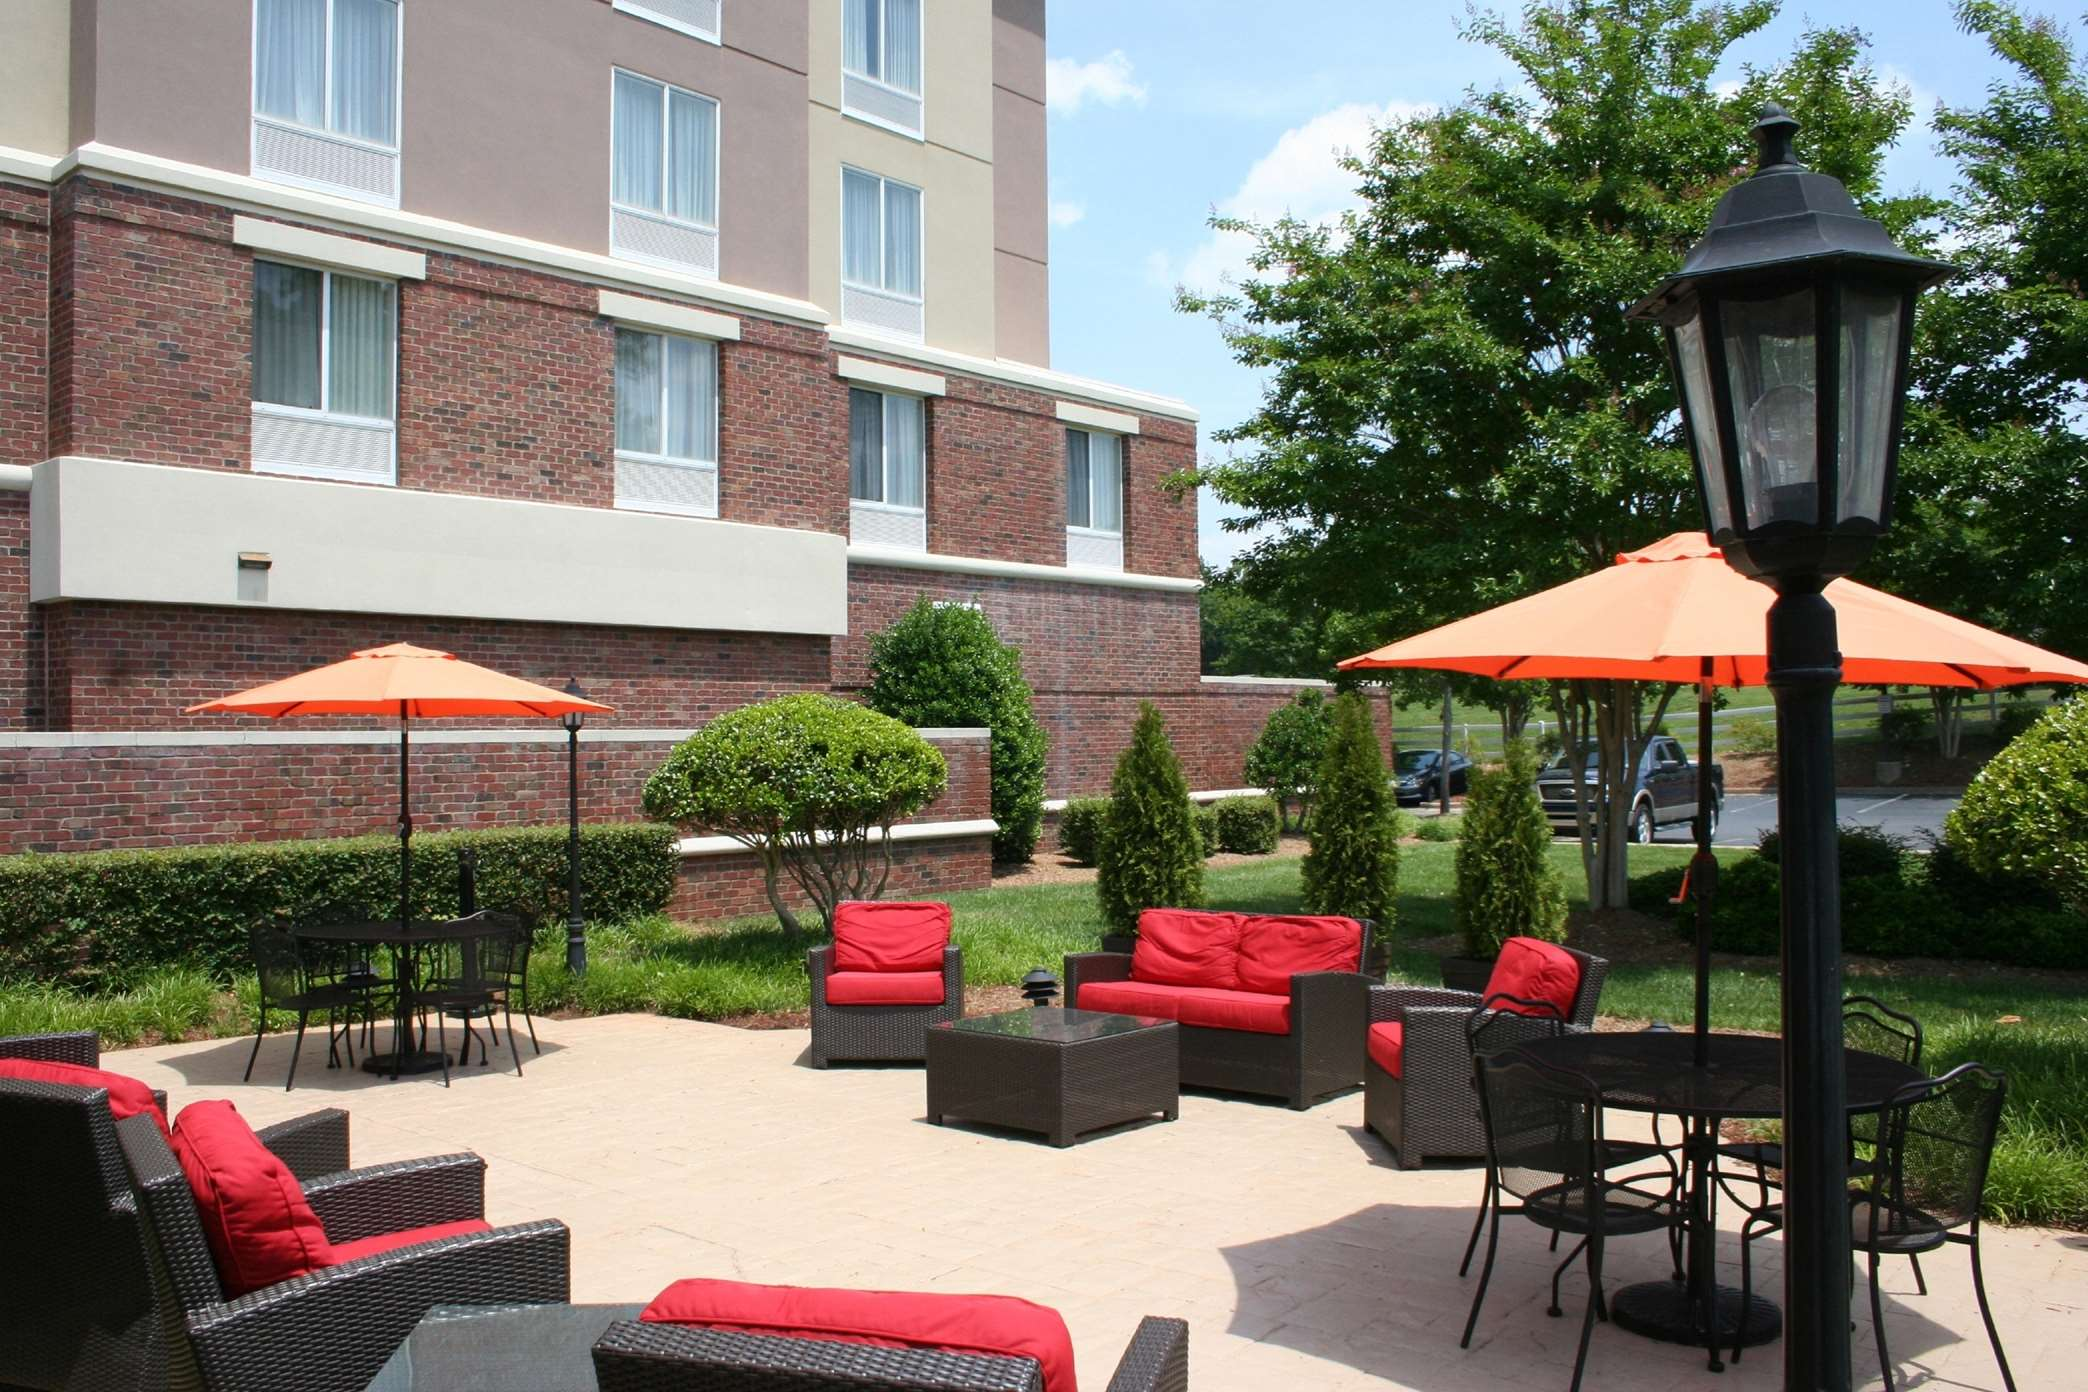 Hilton Garden Inn Rock Hill Coupons Near Me In Rock Hill 8coupons